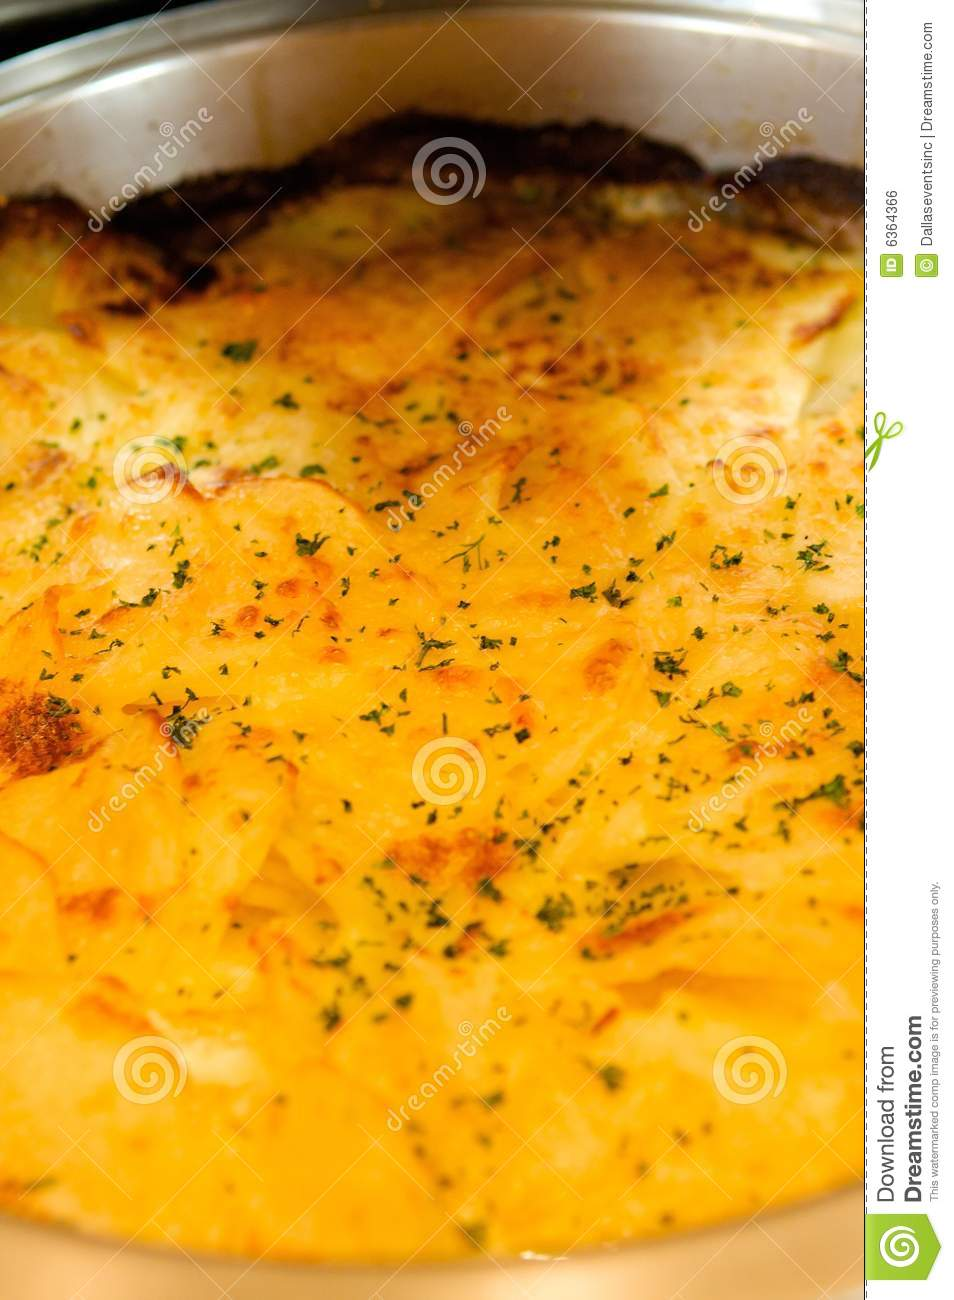 Cheesy Potatoes Au Gratin Royalty Free Stock Image - Image: 6364366